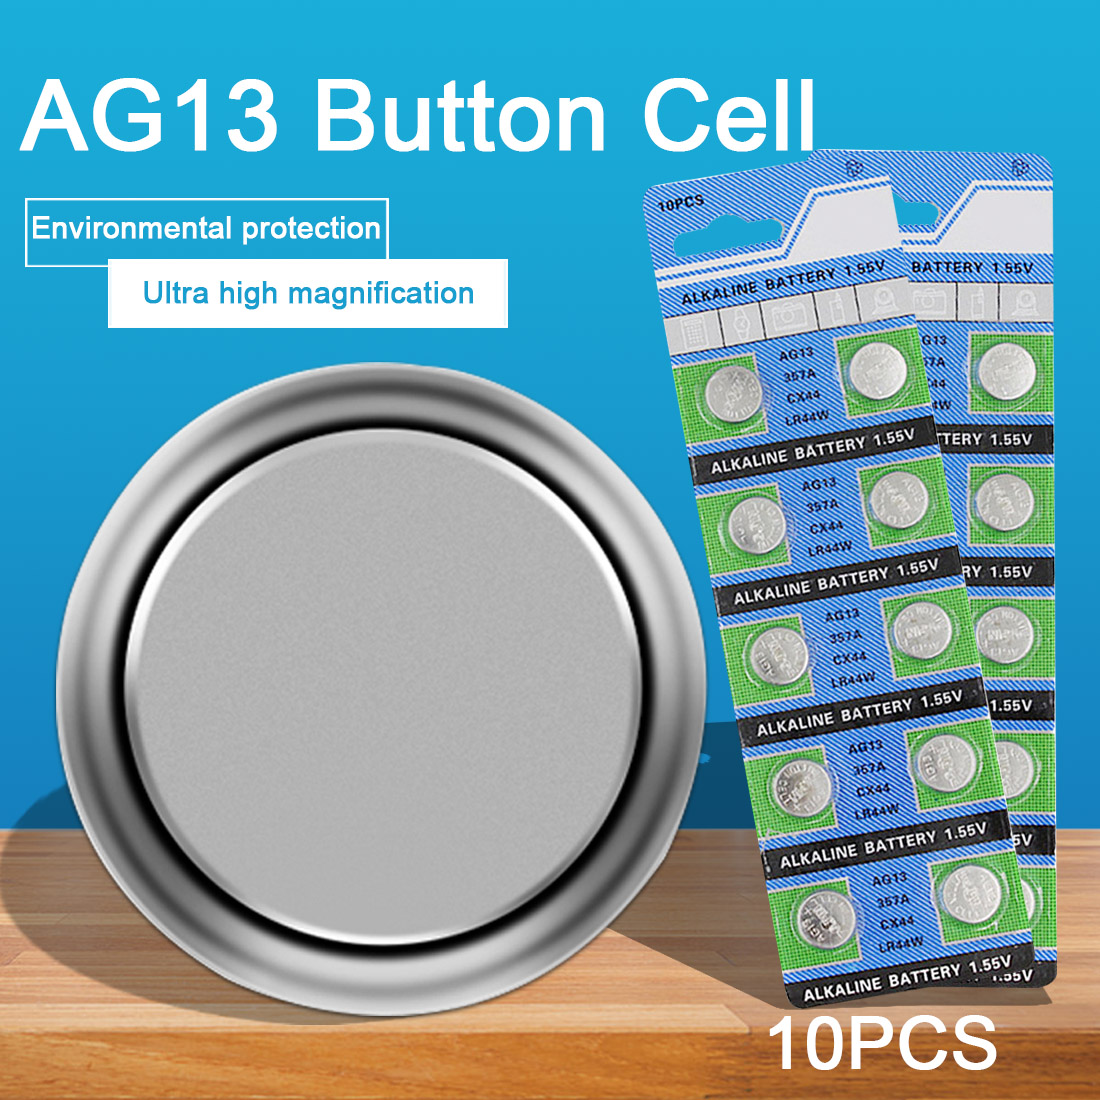 10PCS 1.55V AG13 Watch Battery 357A CX44 LR44W Coin Cell Alkaline Batteries for Toy Calculator Laser Pointer Clock Watch Cameras